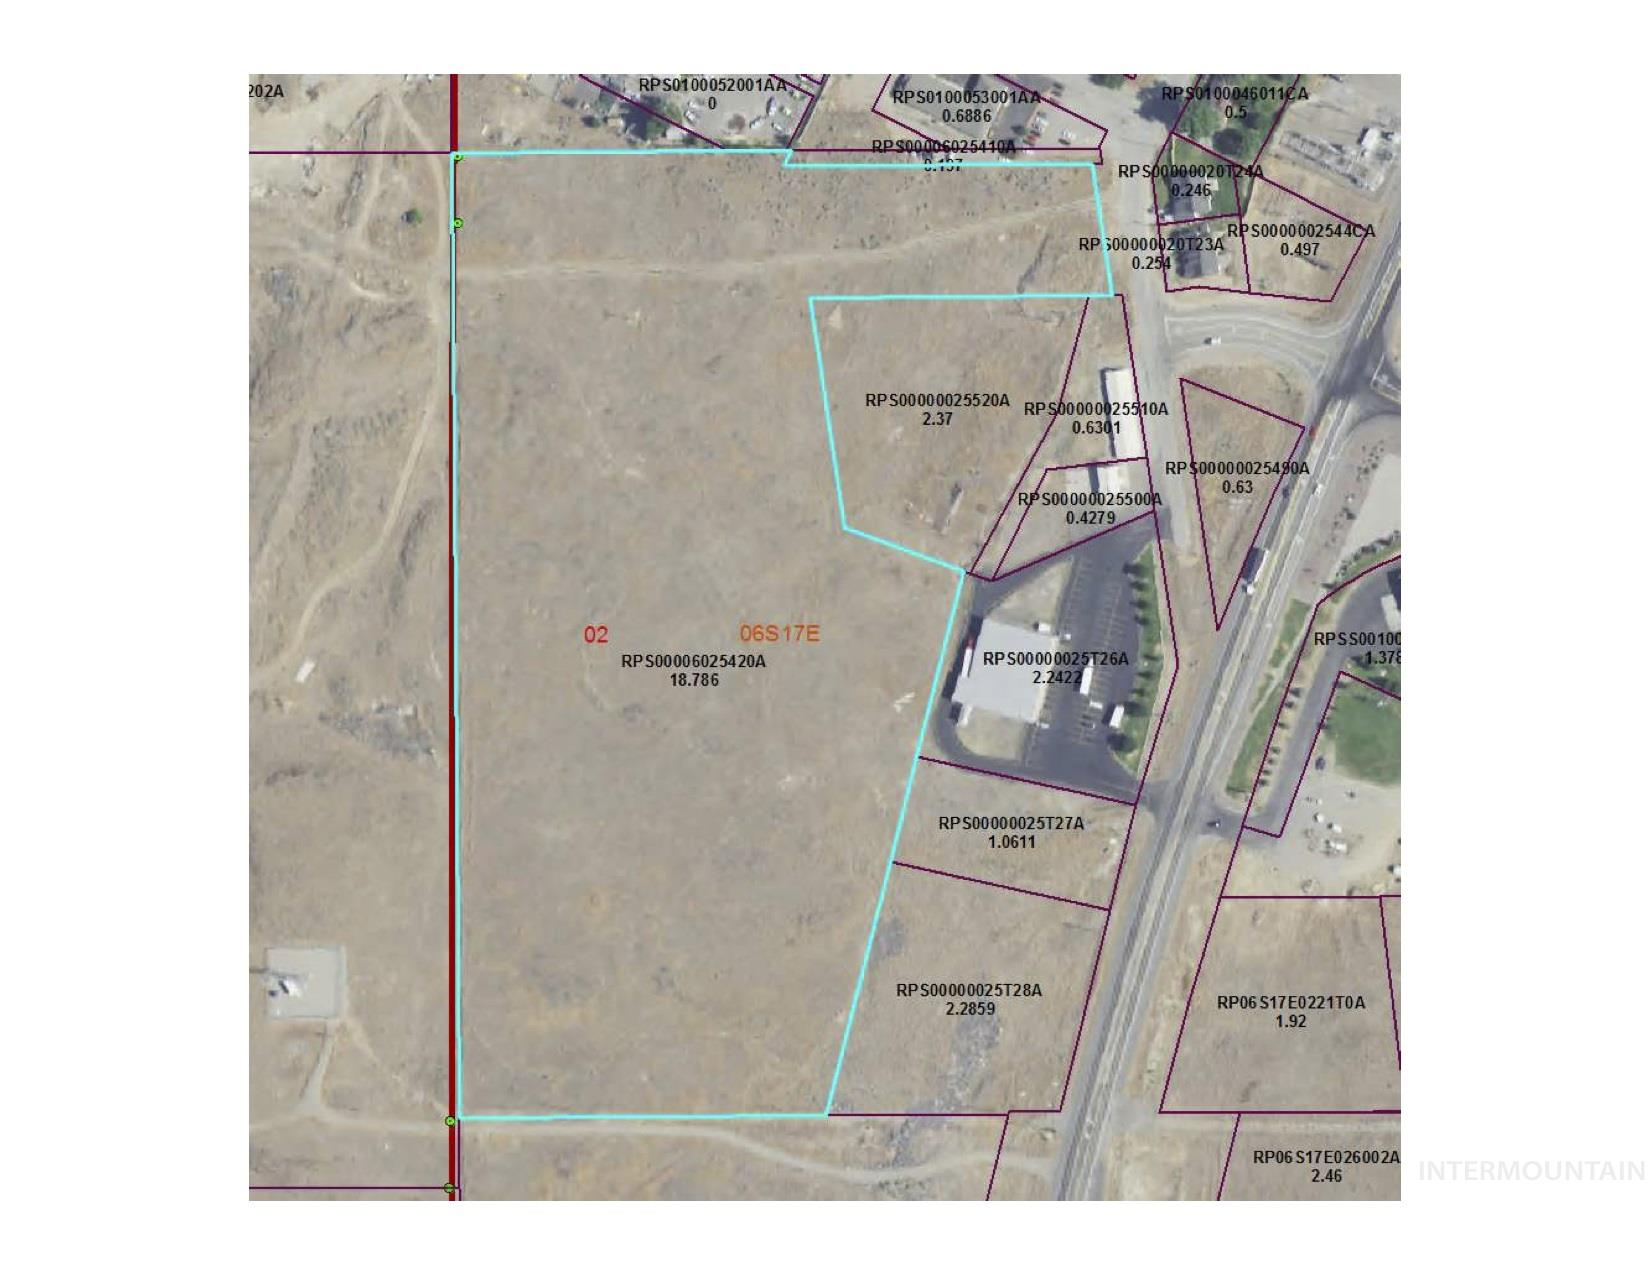 TBD S Apple, Shoshone, Idaho 83352, Land For Sale, Price $299,000, 98787972